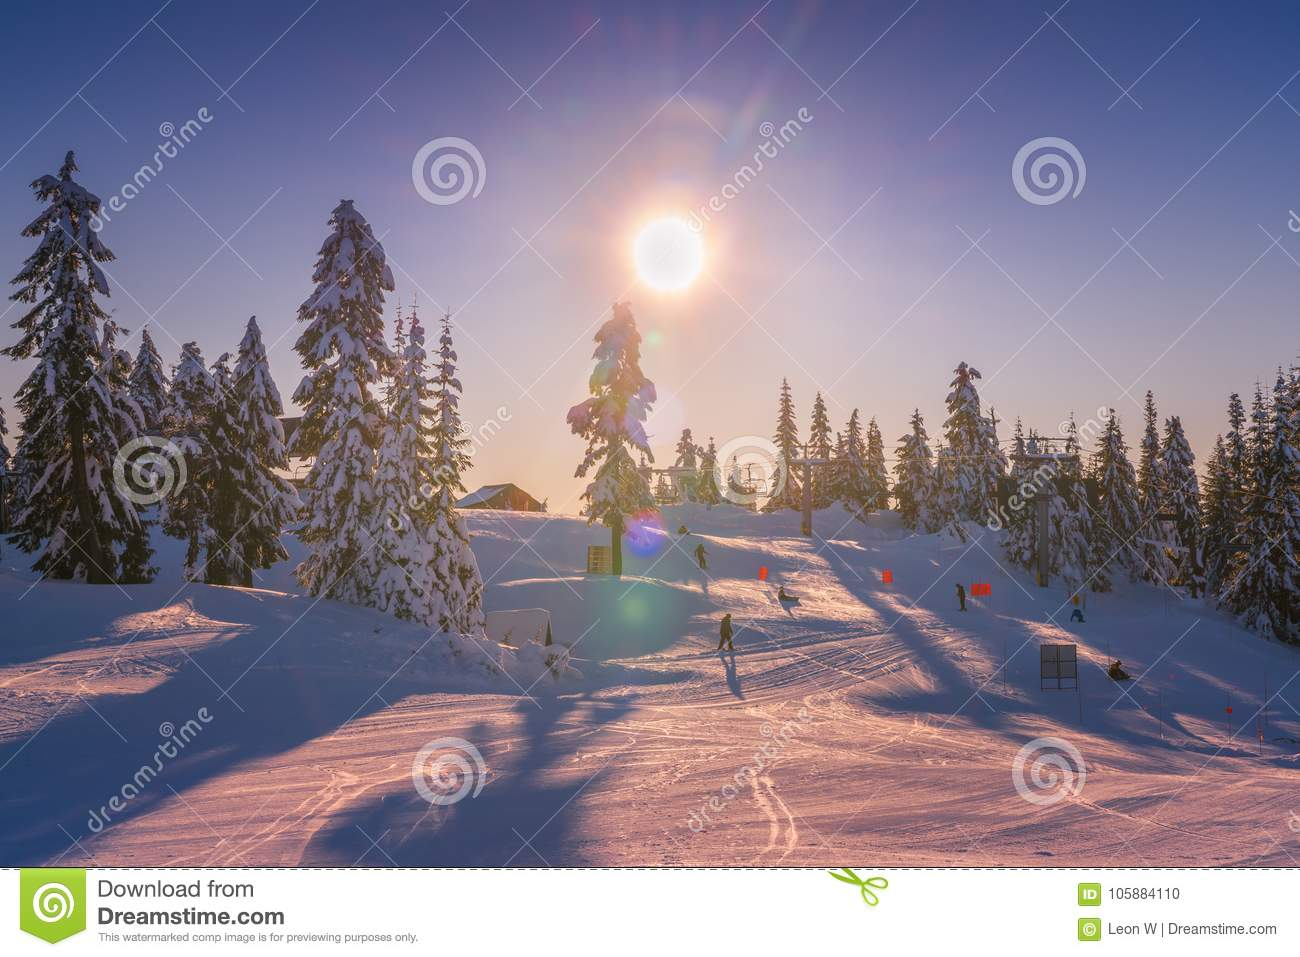 Vancouver Christmas Snow.Winter Snow Landscape At Grouse Mountain Vancouver Bc Canada